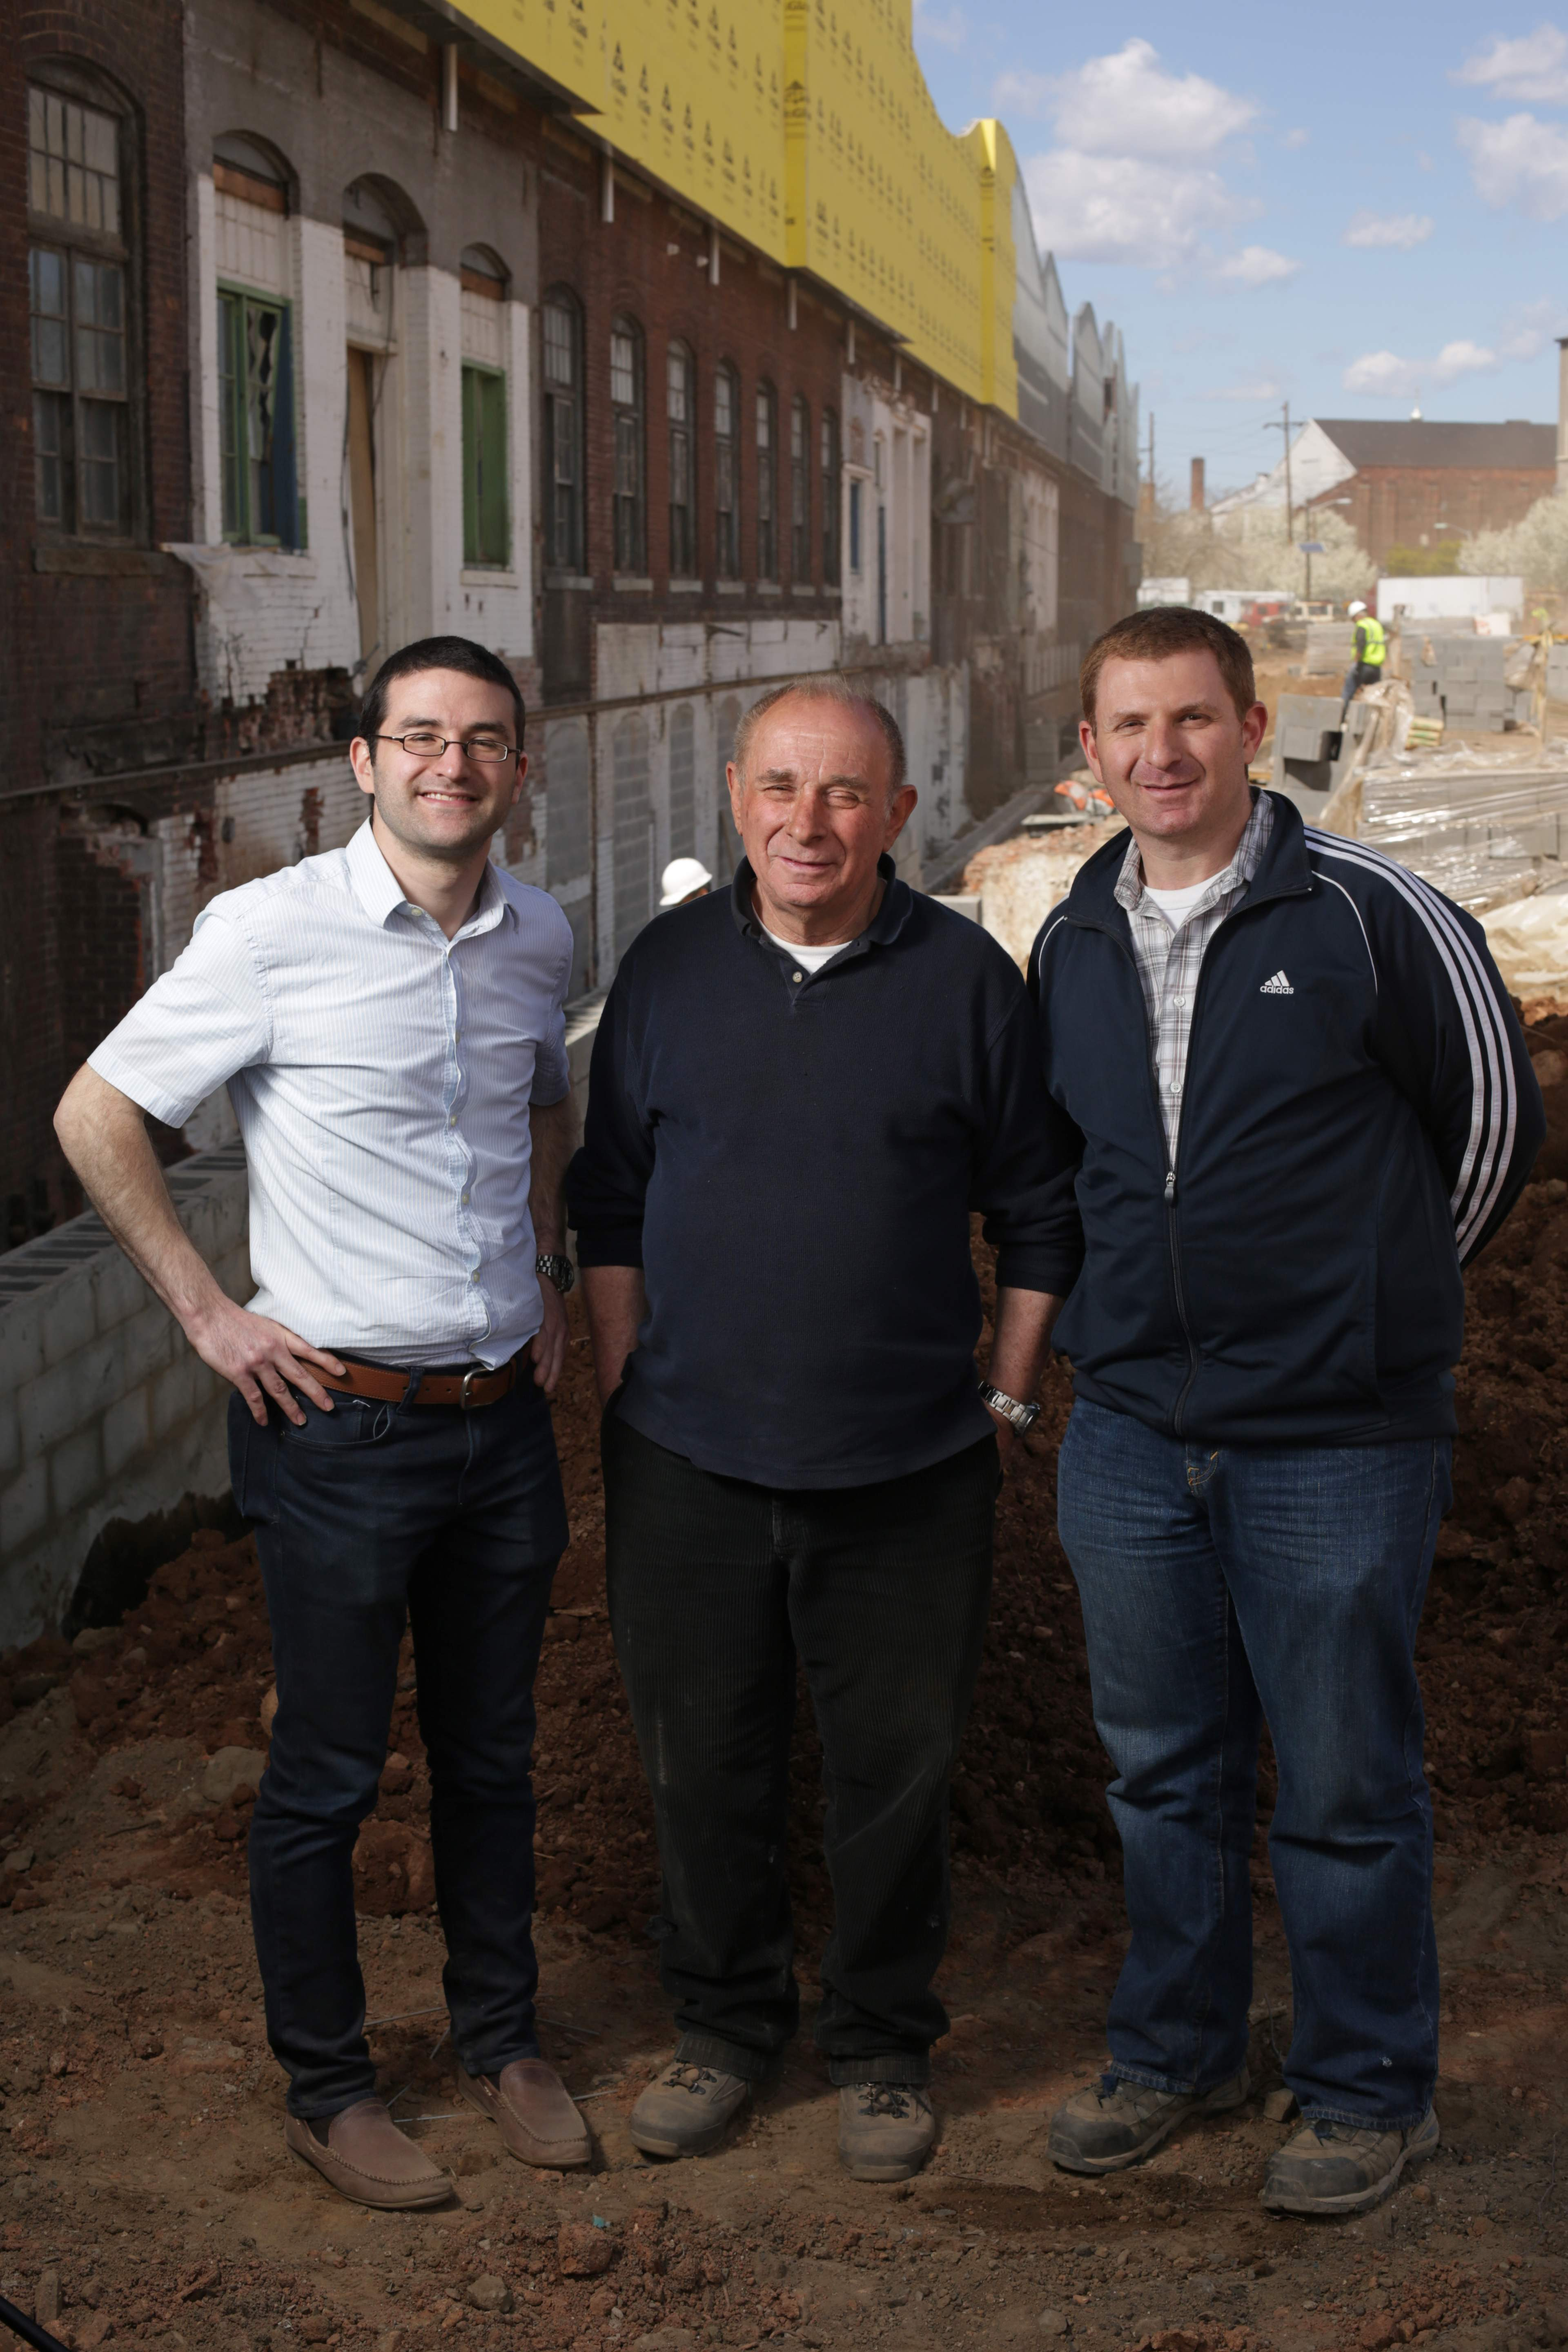 Shimon Einhorn and his sons, David, left, and Shamir, co-directors of Contempo Space in Passaic. The three are pictured in front of the future Contempo Plaza.